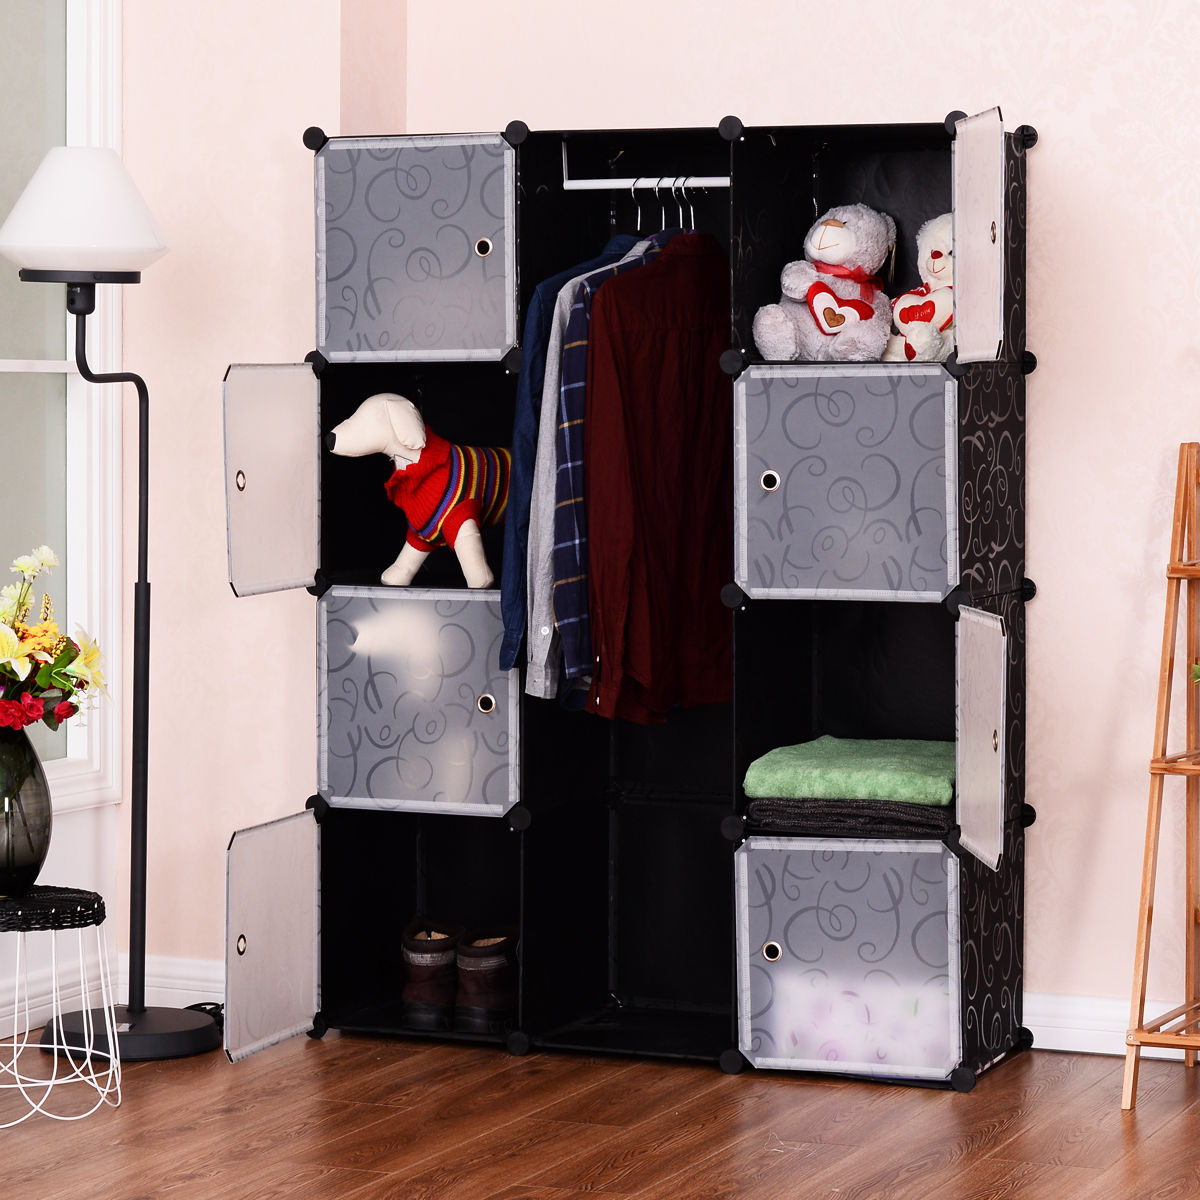 Costway DIY 12 Cube Portable Closet Storage Organizer Clothes Wardrobe Cabinet W/Doors